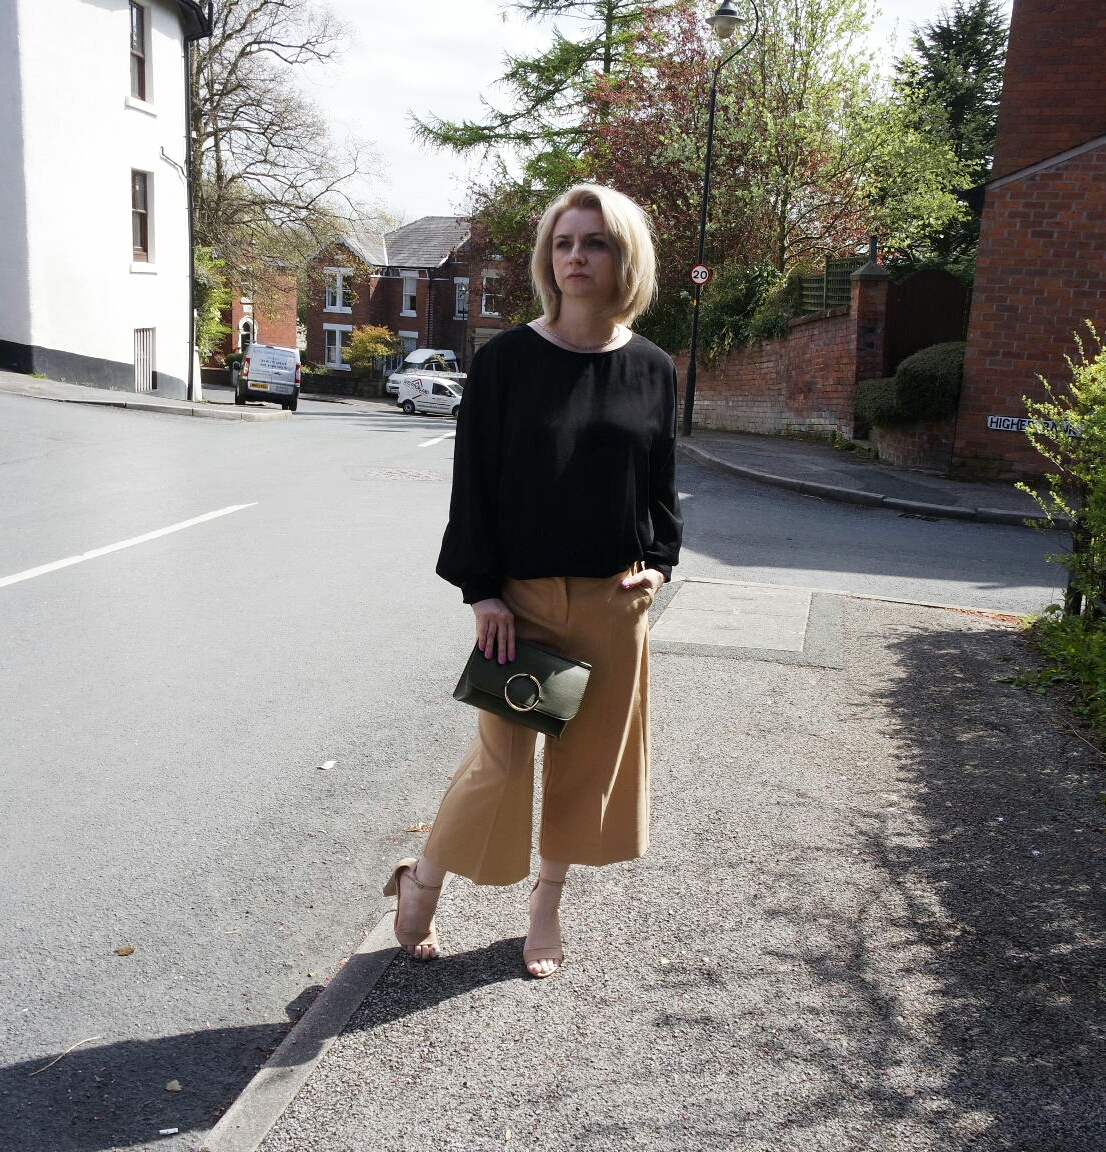 River Island Camel Culottes,H&M Black Low V Back Top,Olive Green Clutch and Nude Heels New Look.